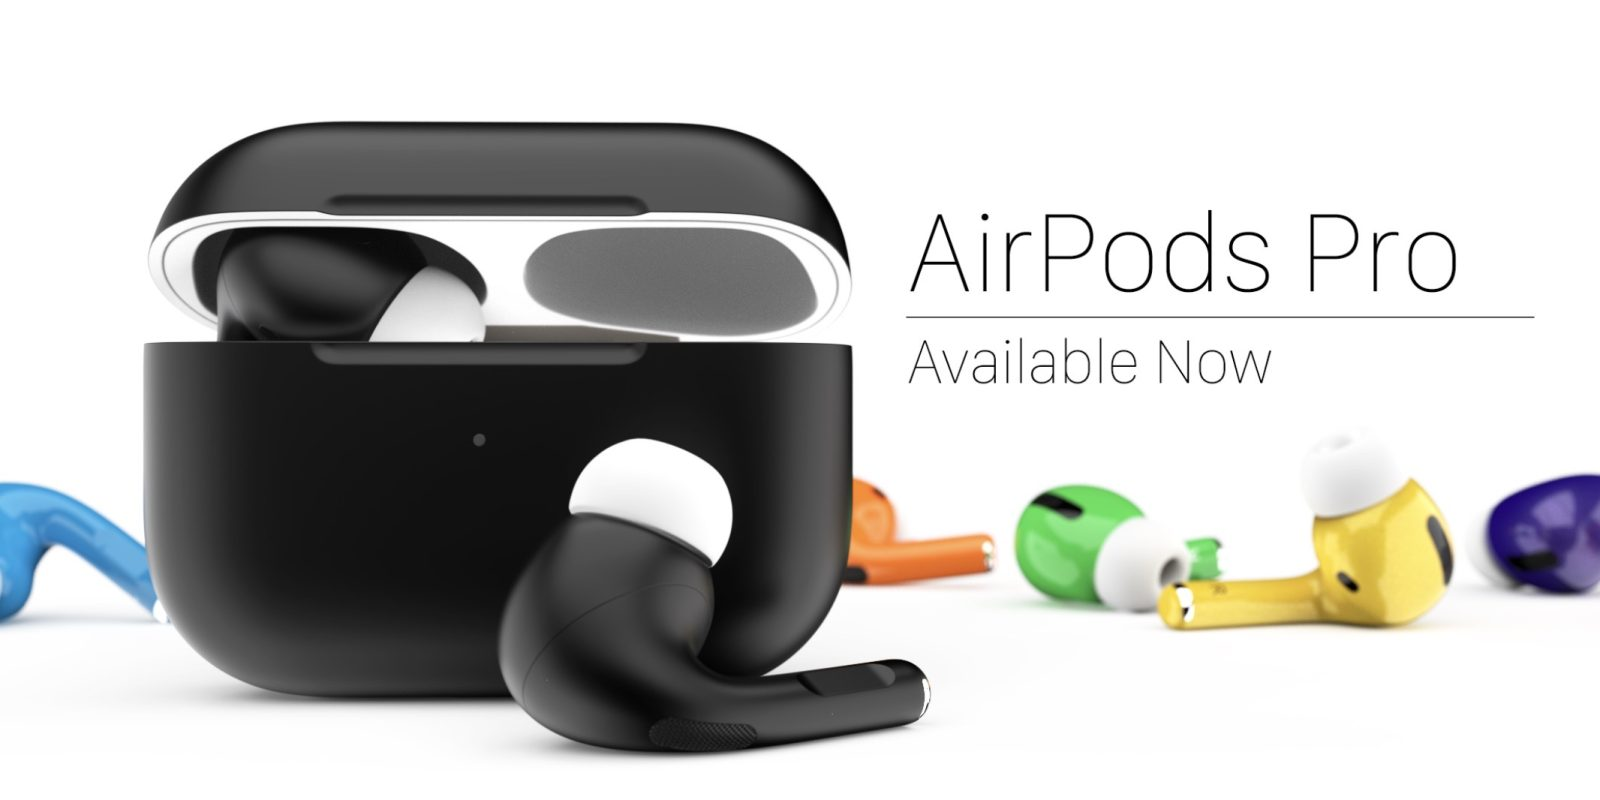 ColorWare brings color to AirPods Pro w/ matte and glossy custom options for $439